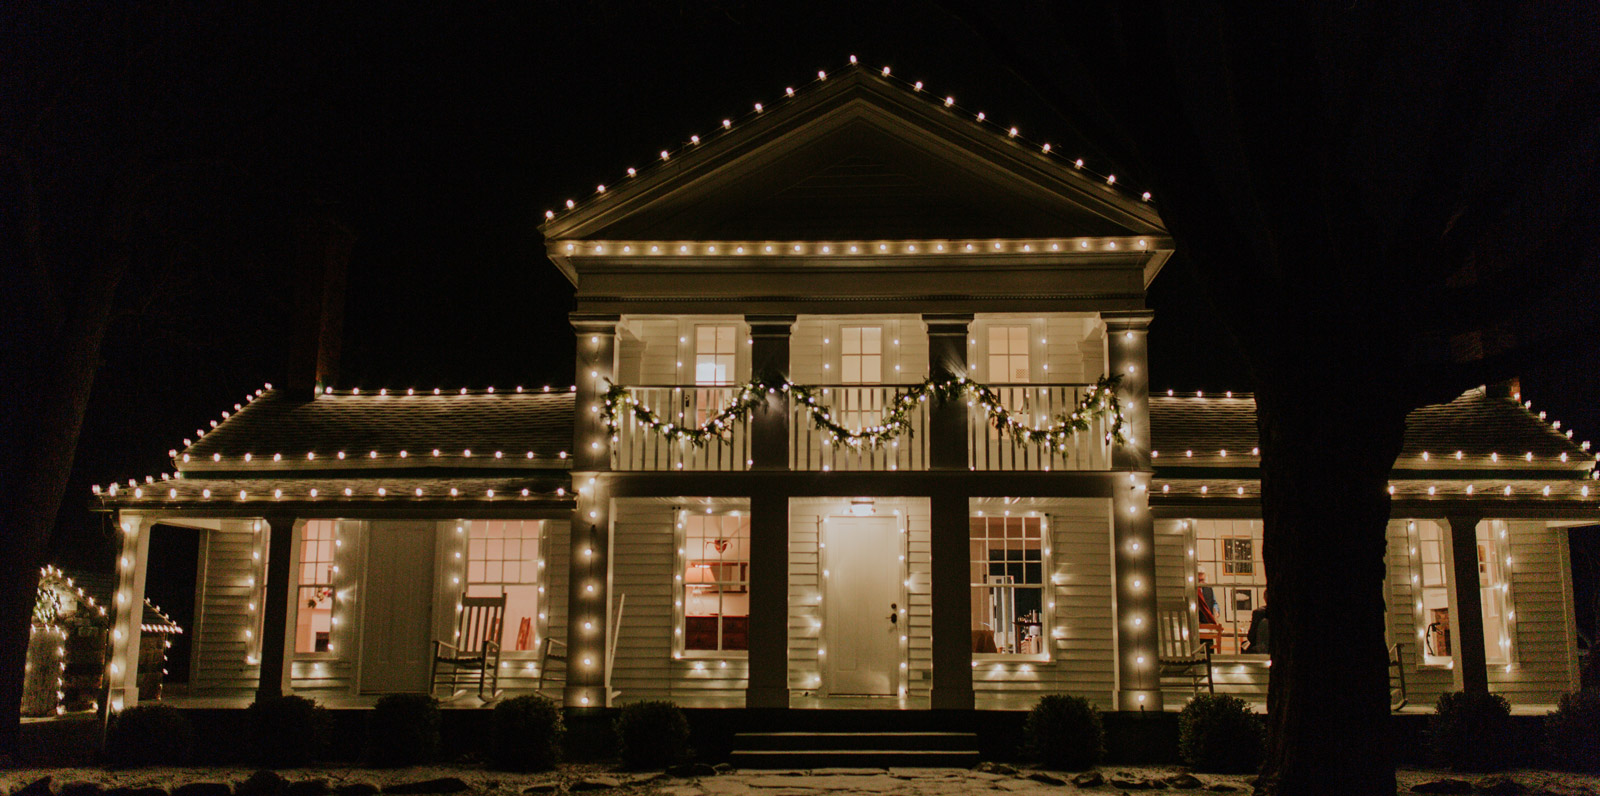 Exterior of the Zingerman's farmhouse at night